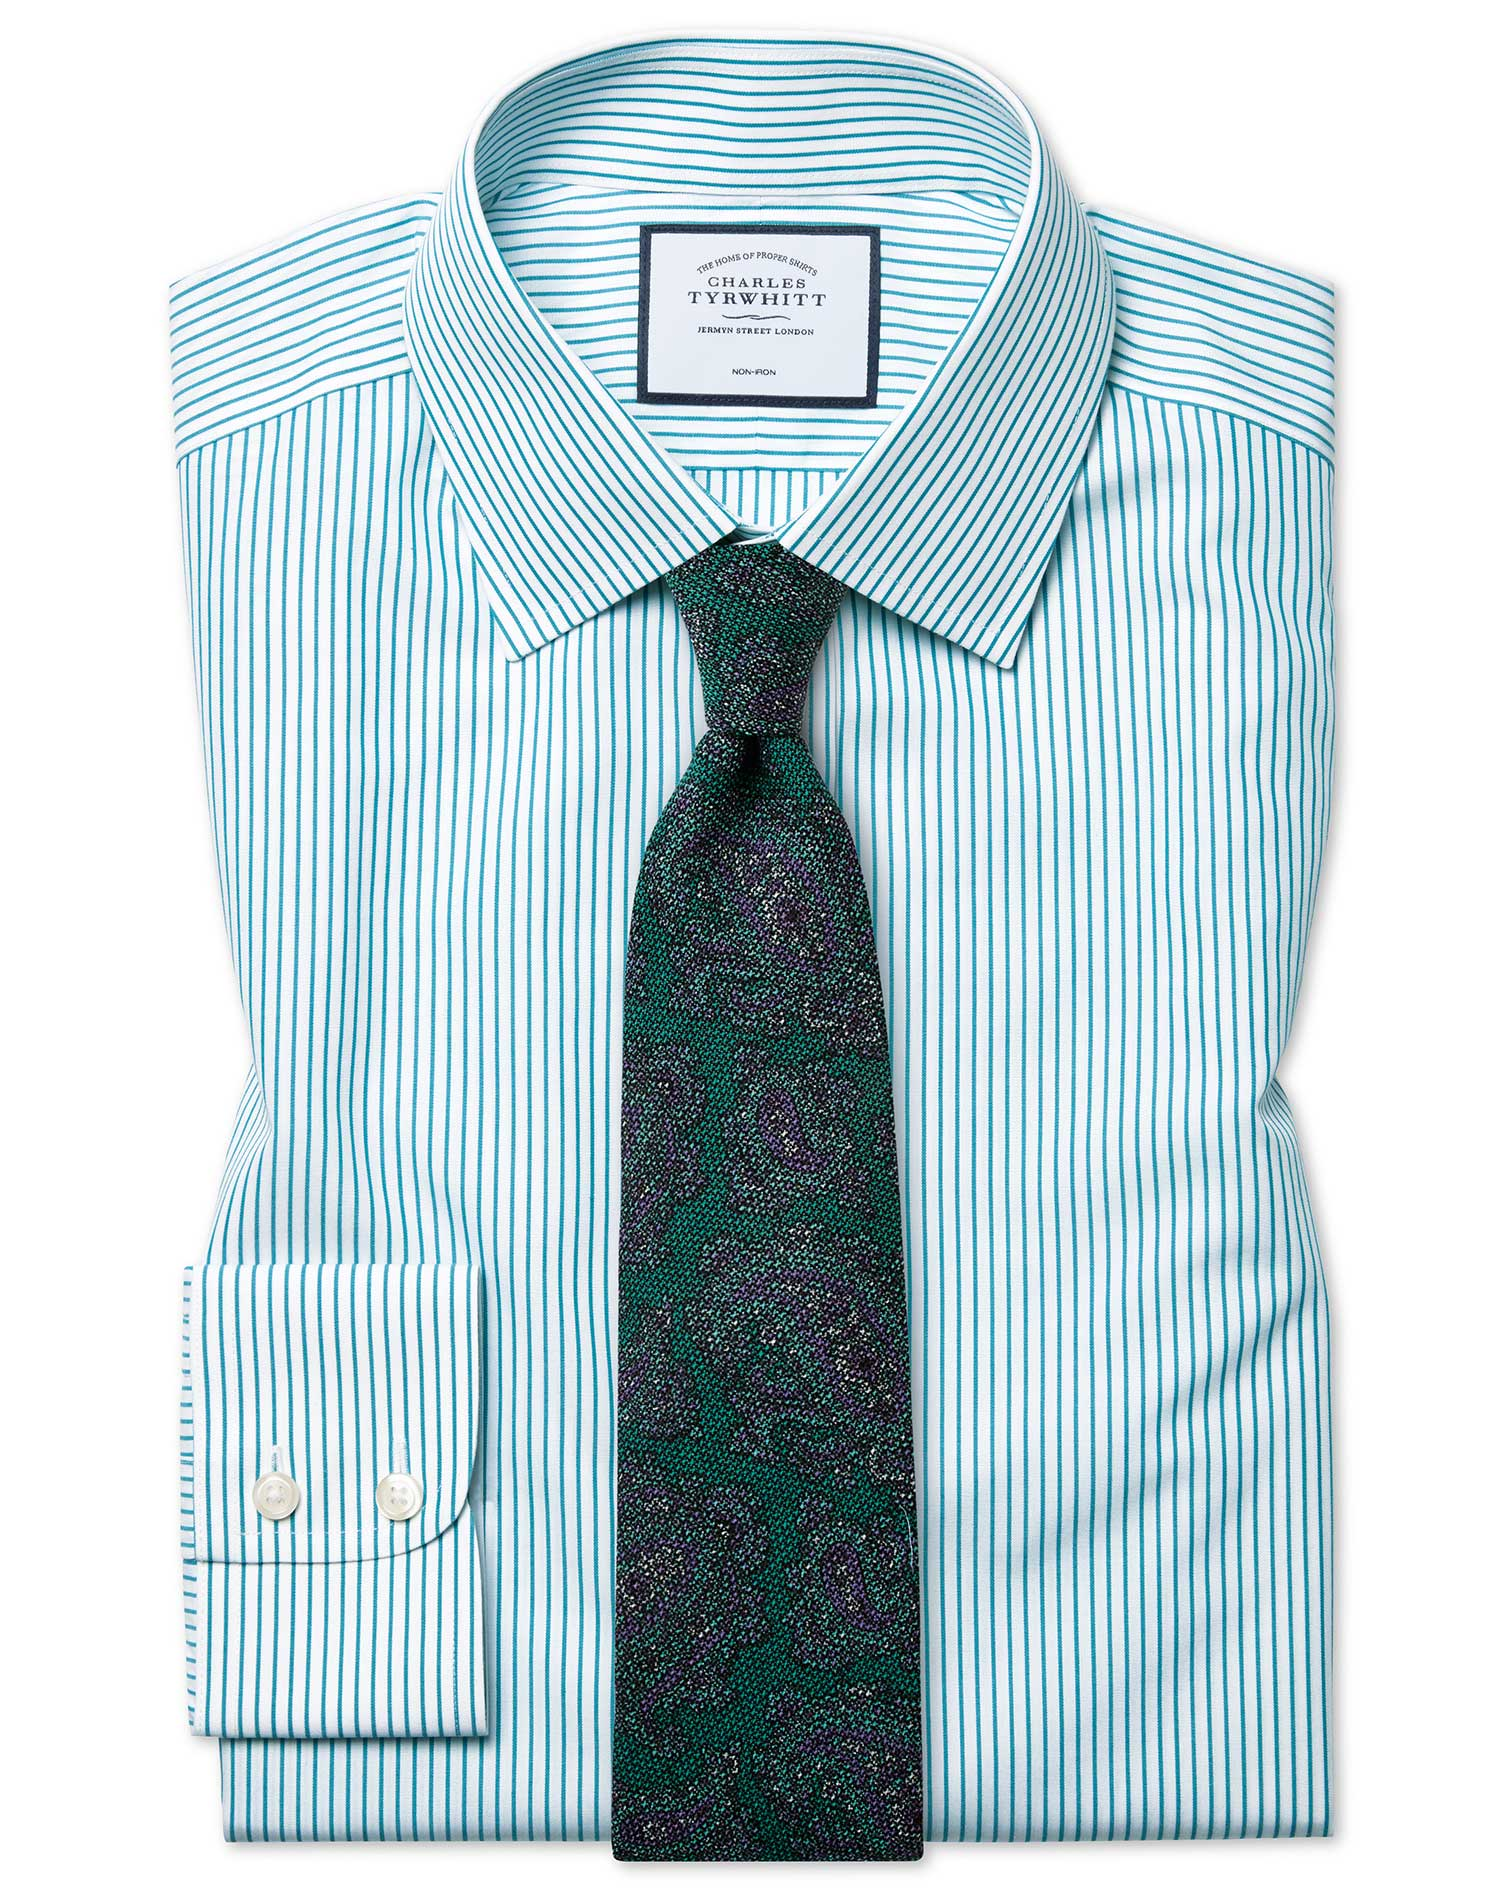 Slim Fit Non-Iron Stripe Green Cotton Formal Shirt Double Cuff Size 17/37 by Charles Tyrwhitt